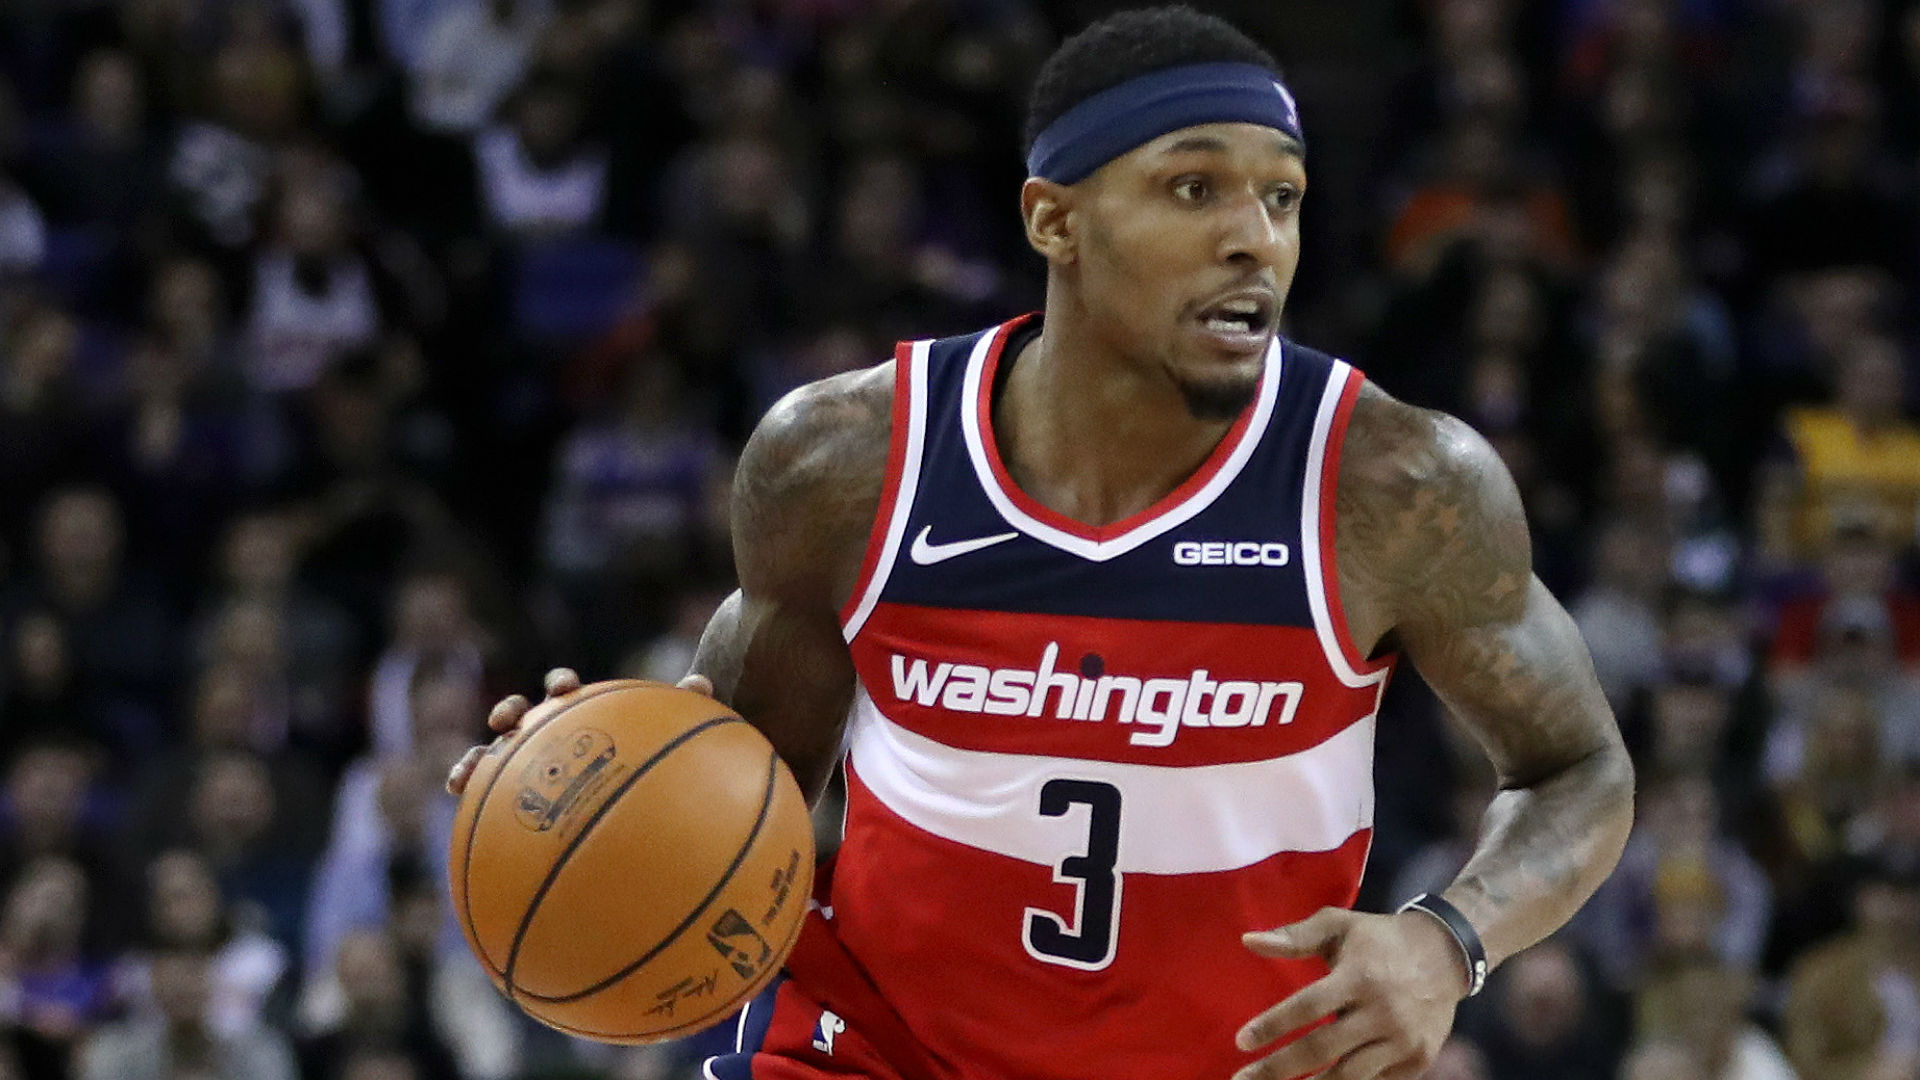 NBA trade rumors: Wizards have shown 'no willingness' to deal star Bradley Beal